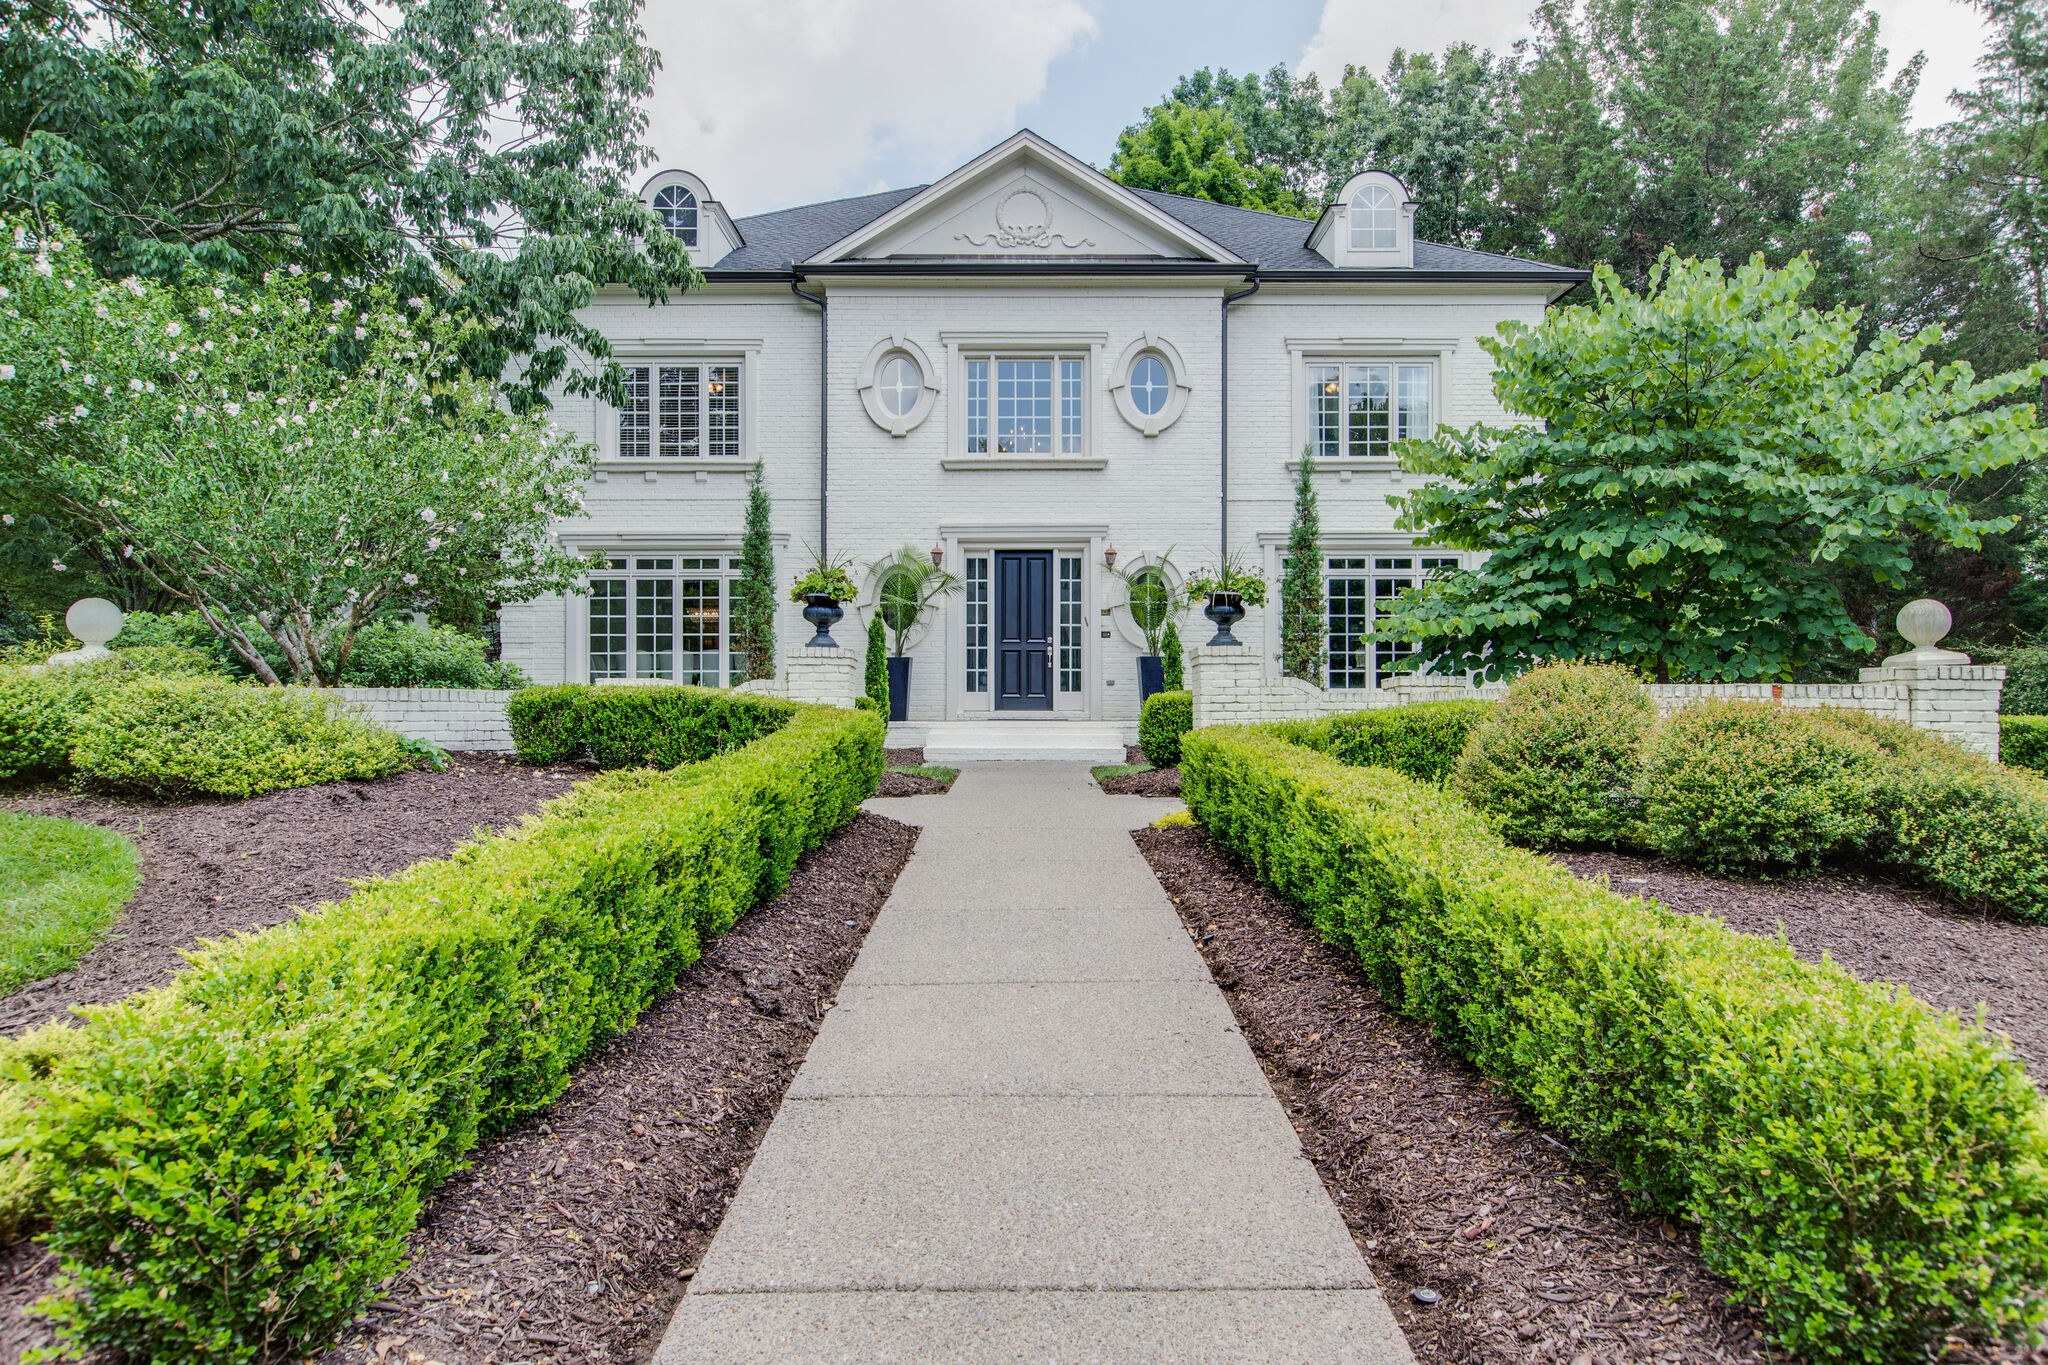 Sophisticated elegance! Completely renewed - white, bright, with all the modern touches, including a flat backyard with pool and hot tub. Seller offers HOME WARRANTY to Buyer. Covid restrictions in place. Masks required.